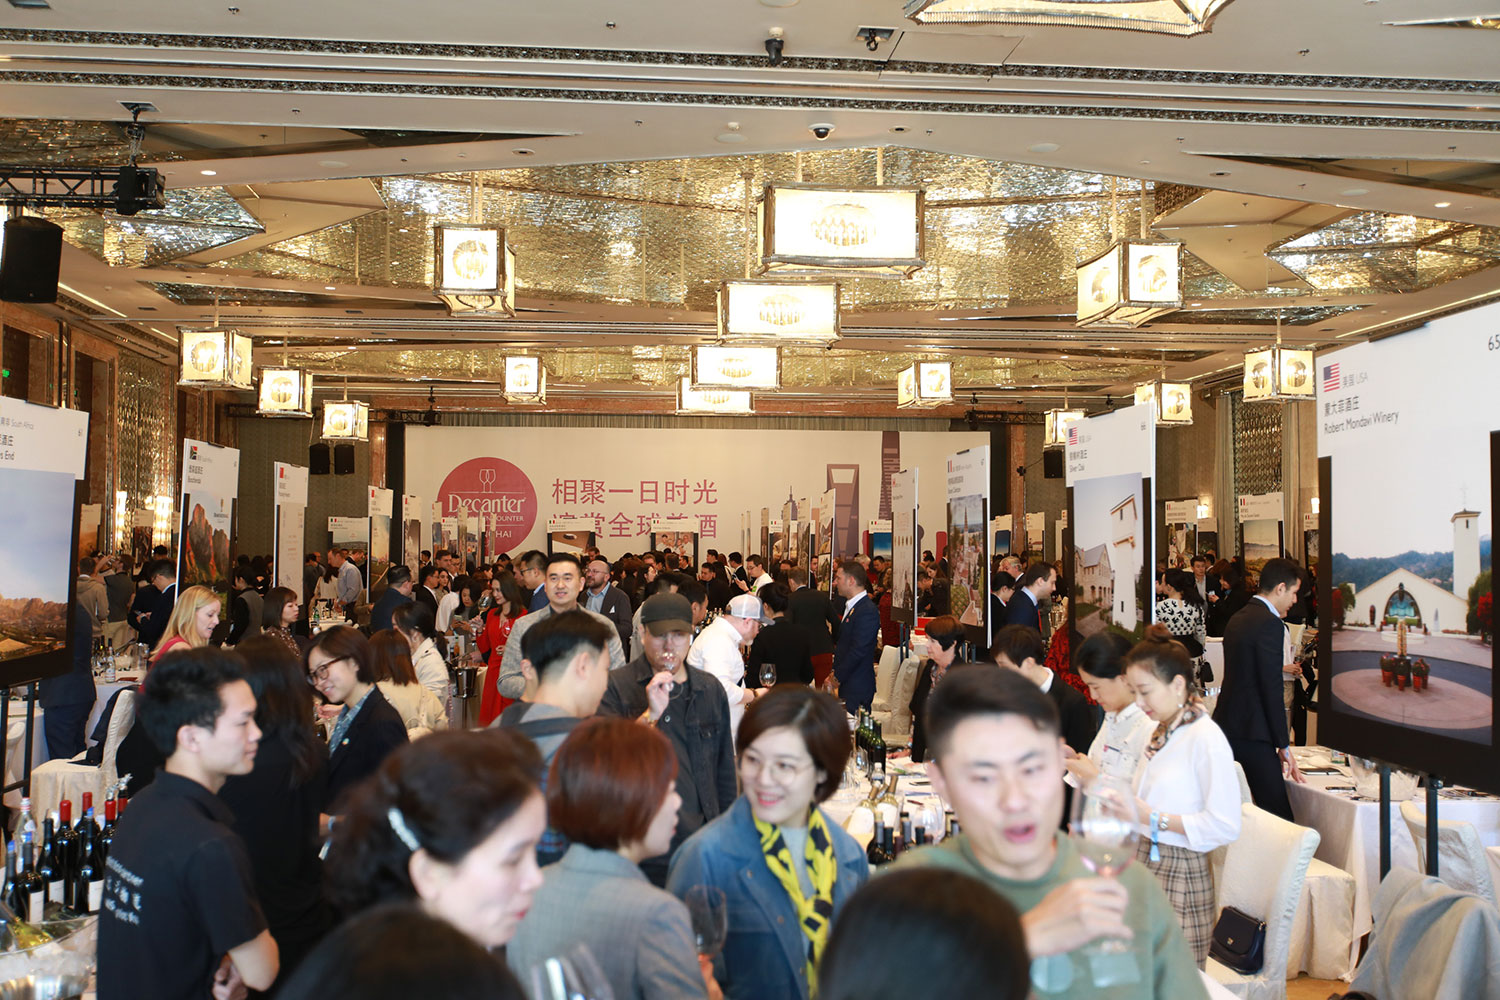 More than 1200 fine wine lovers attend the 2019 Decanter Shanghai Fine Wine Encounter